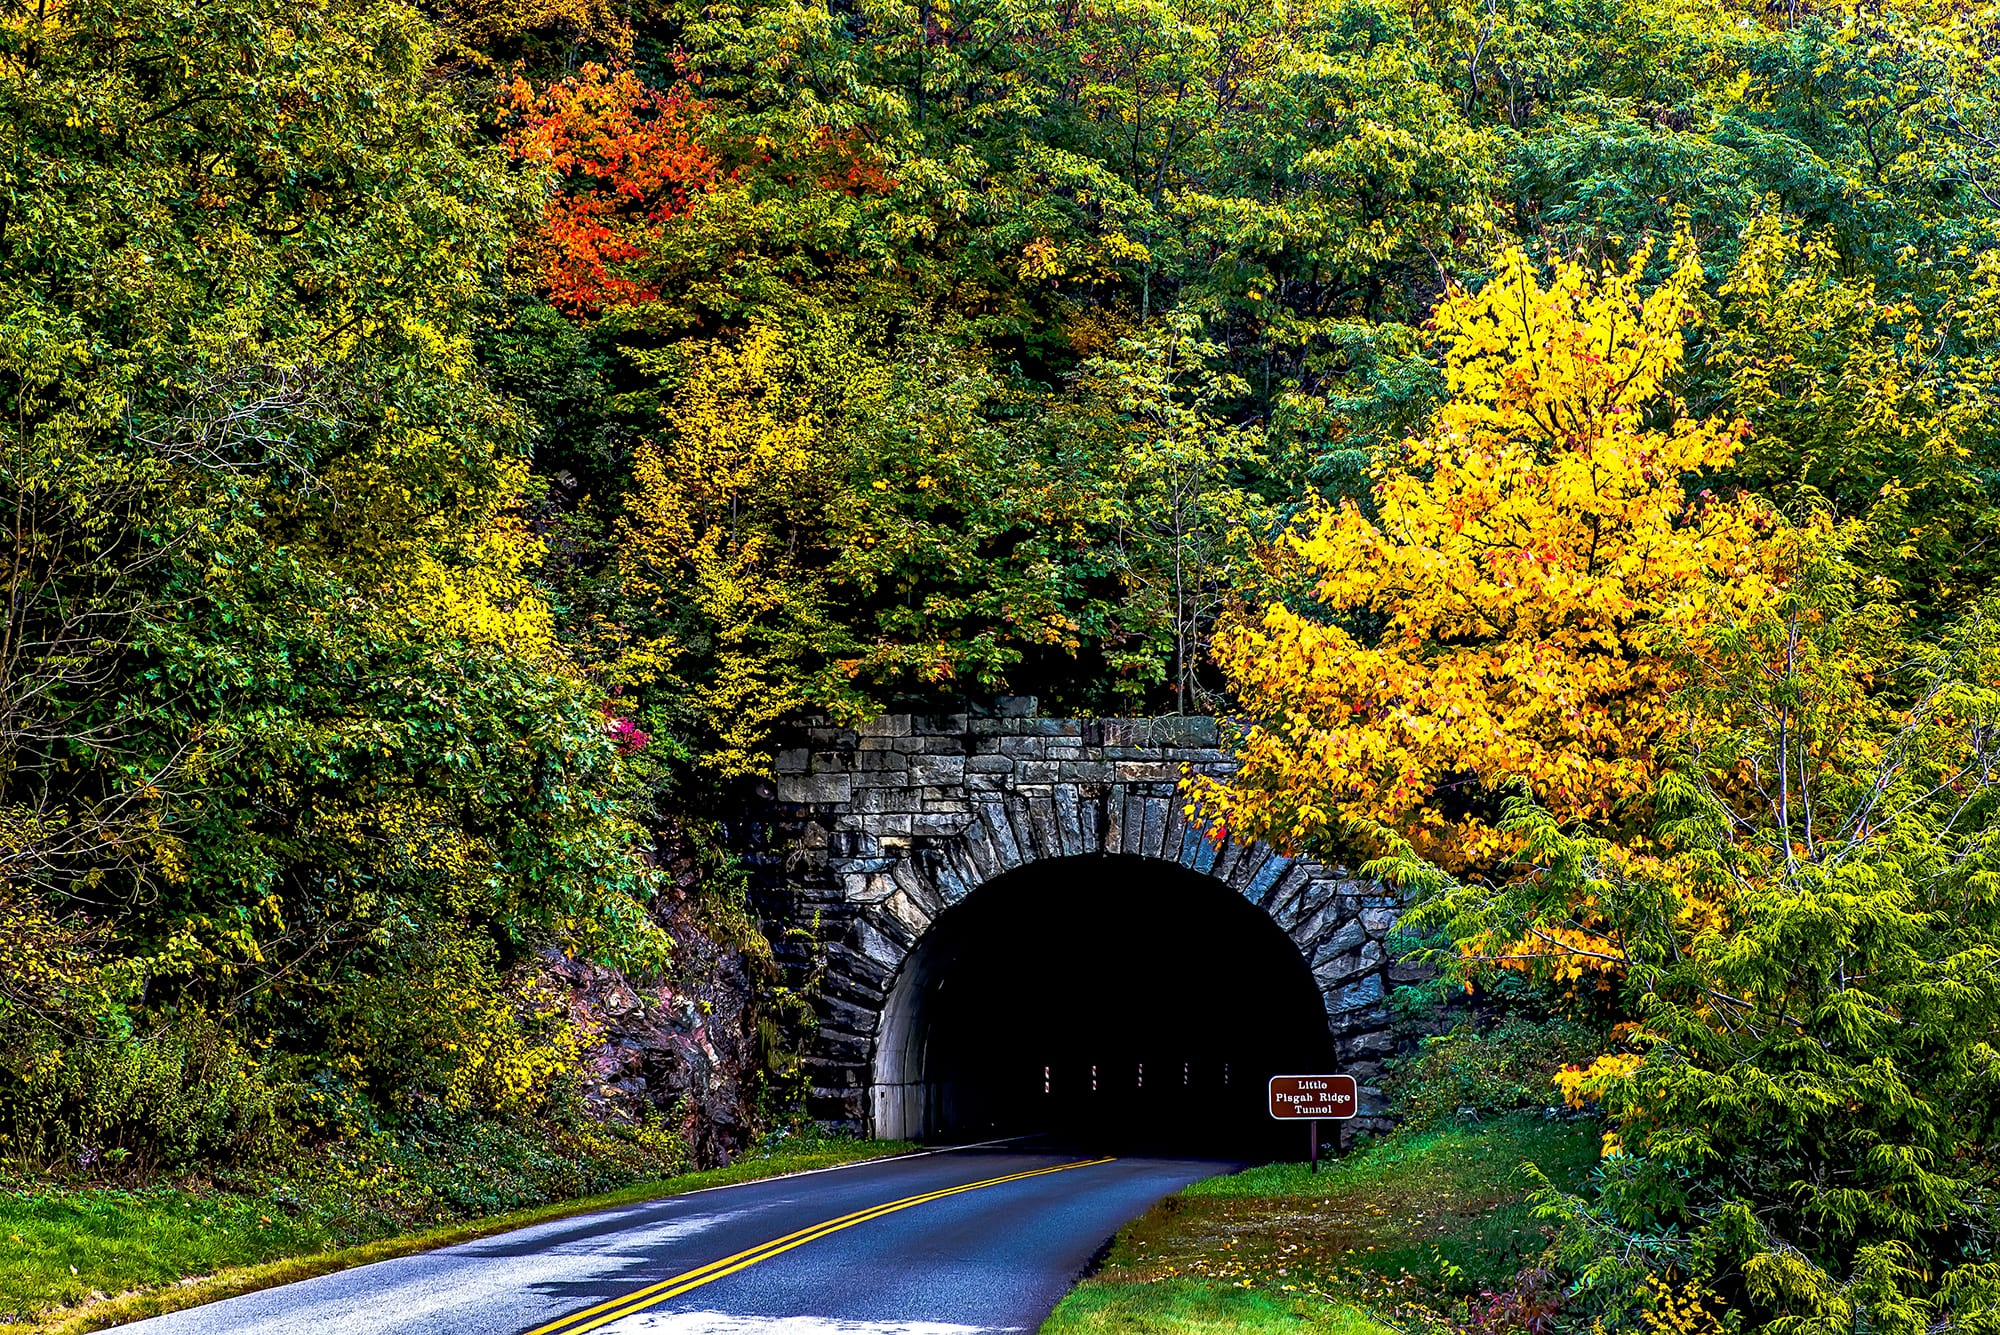 Tunnel on The Blue Ridge Parkway